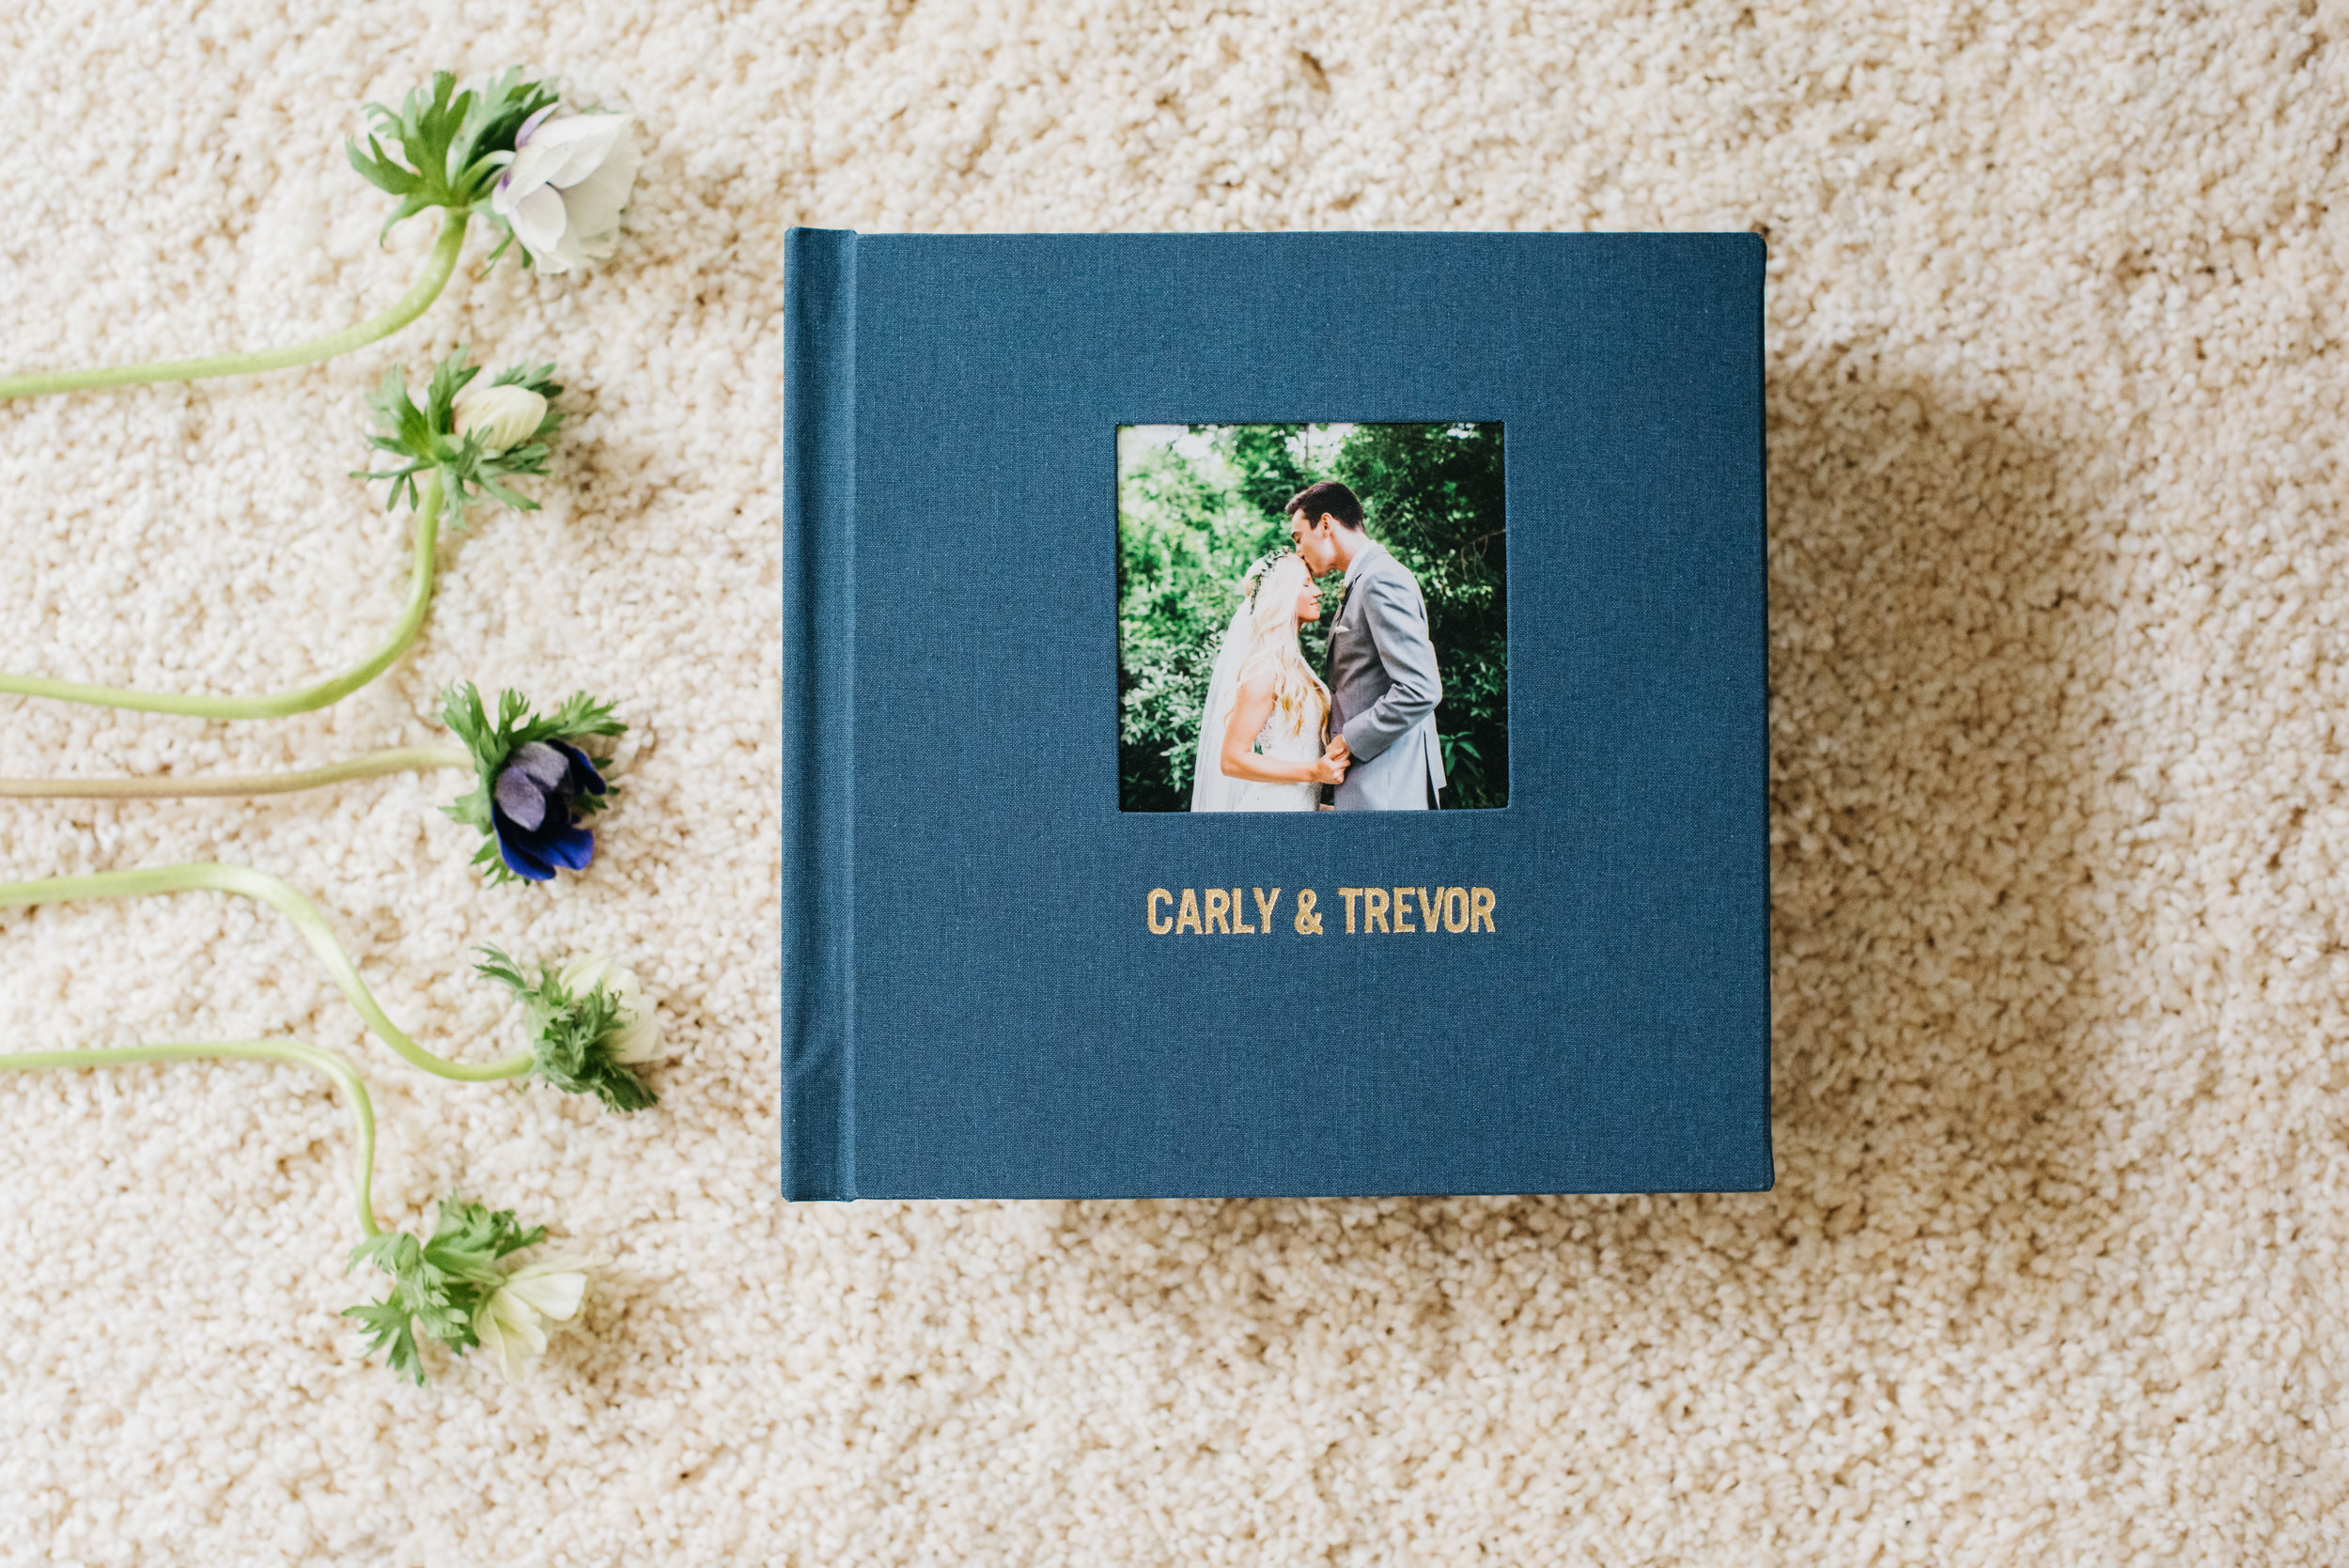 Erika Aileen Photography Kiss Books Wedding Albums